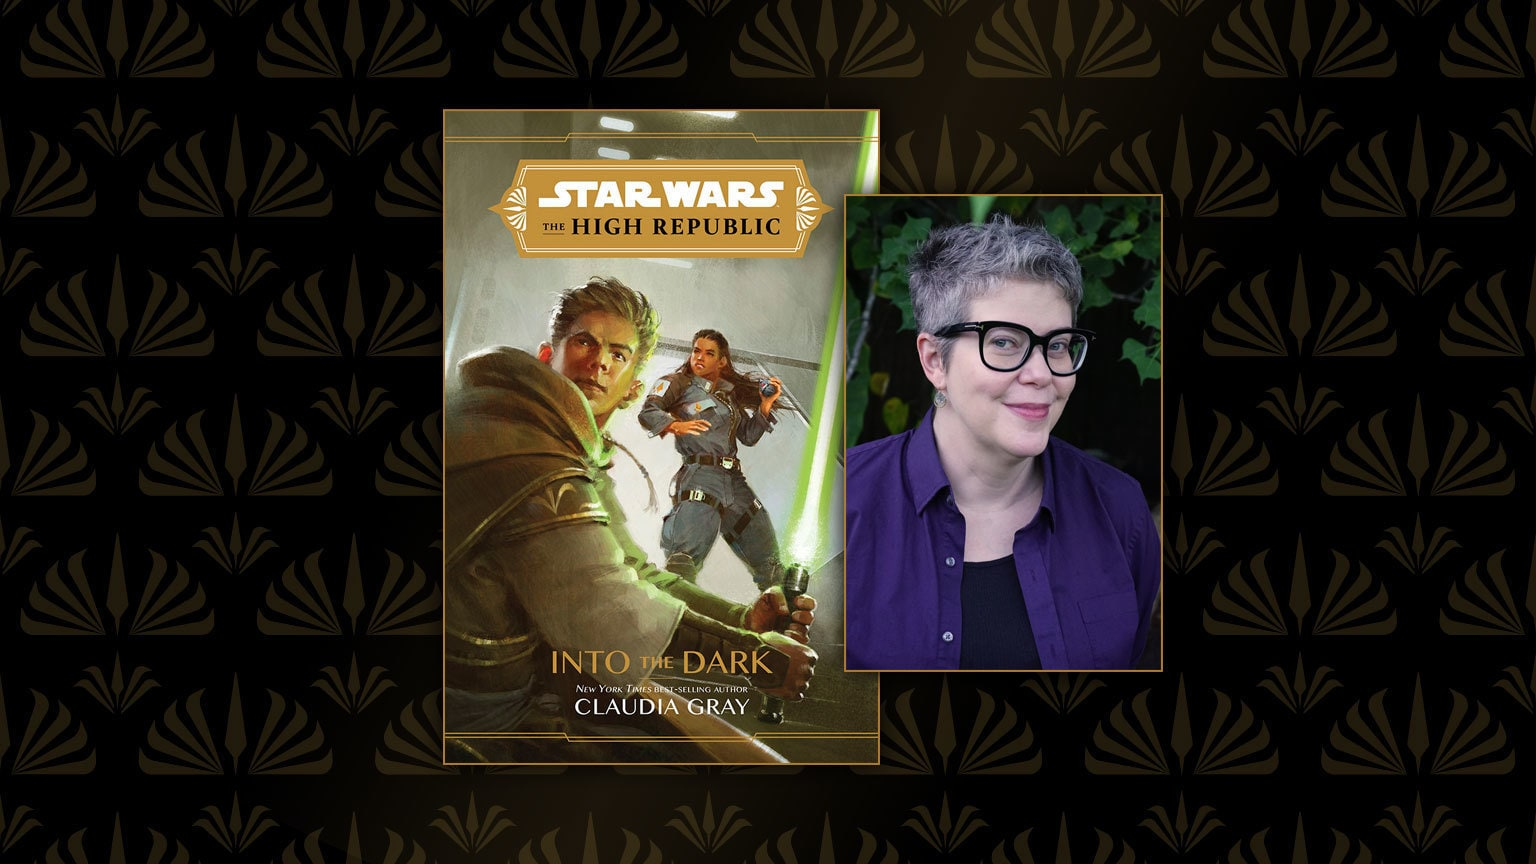 The Makers of Star Wars: The High Republic: Claudia Gray on Into the Dark